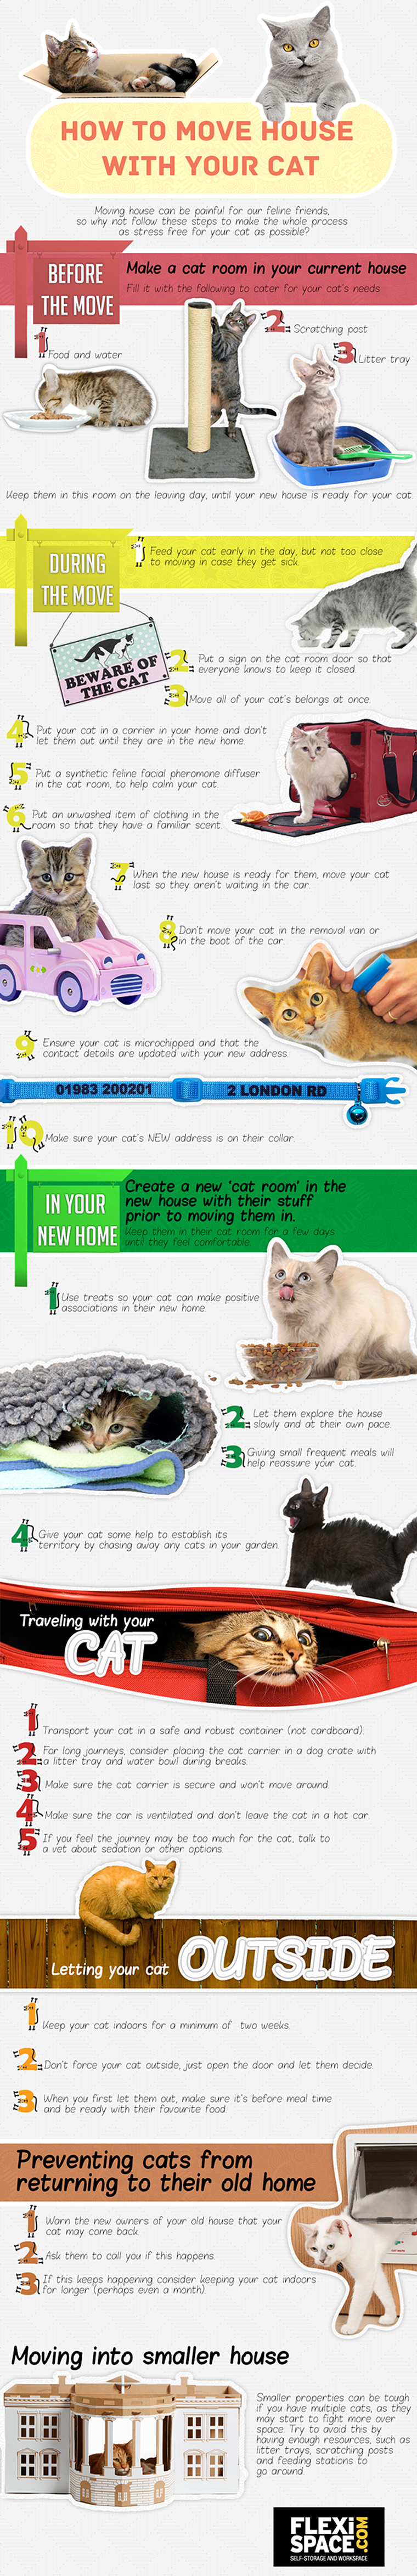 How-To-Move-House-With-Your-Cat